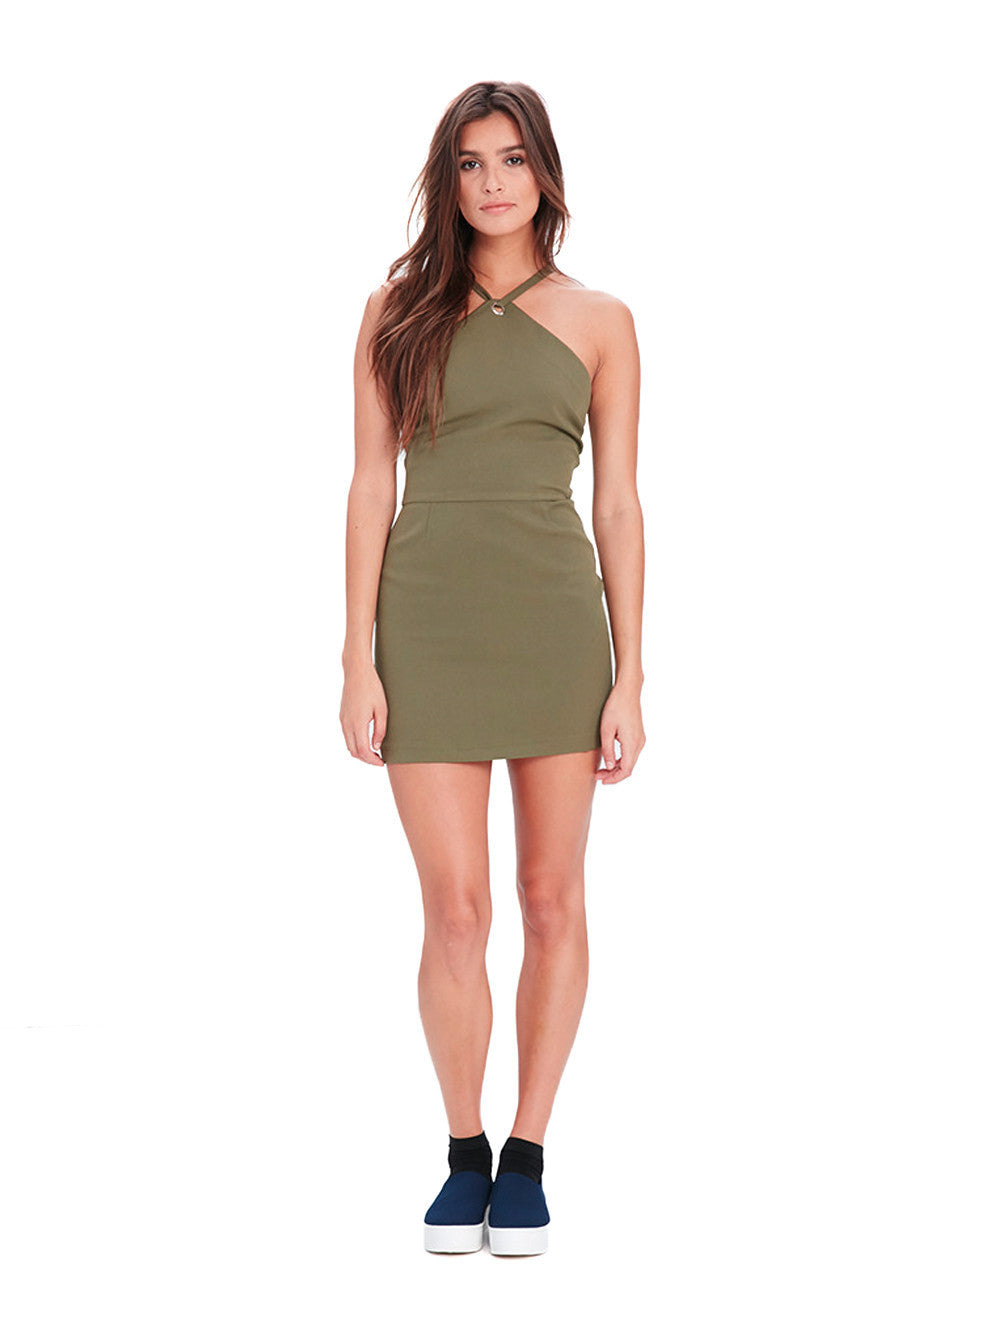 c124d7580e2 Reckless Girls Womens - Dresses   Rompers - Mini Shay Mini Dress - Olive ...